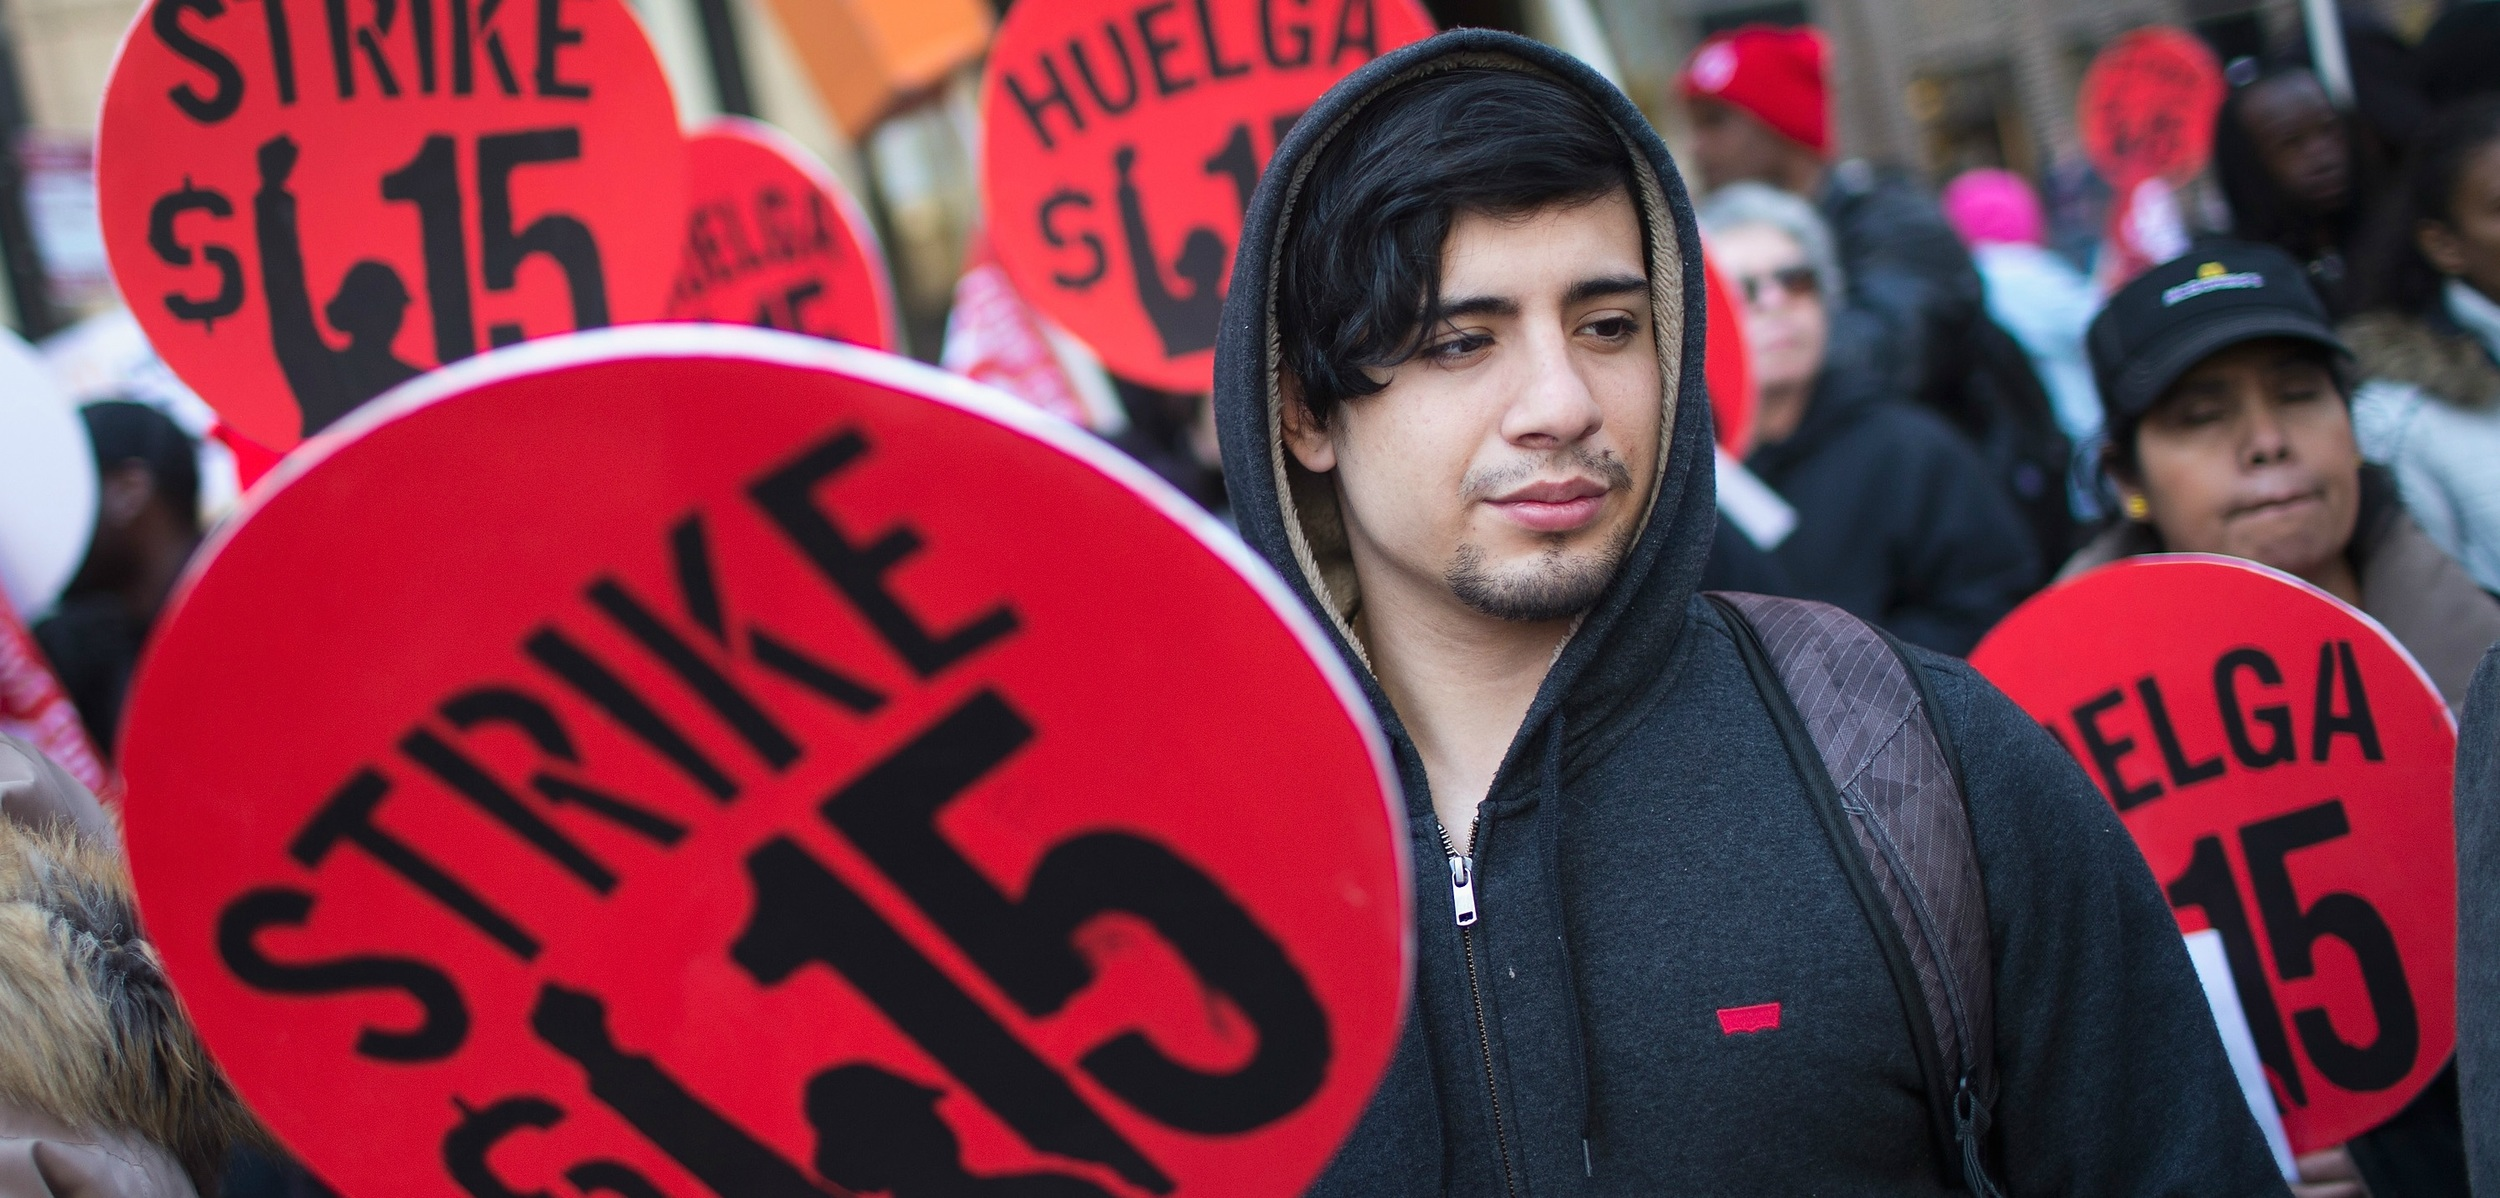 Demonstrators demand an increase in the minimum wage to $15 per hour in Chicago on April 14.  Photo credit: SCOTT OLSON/Getty Images